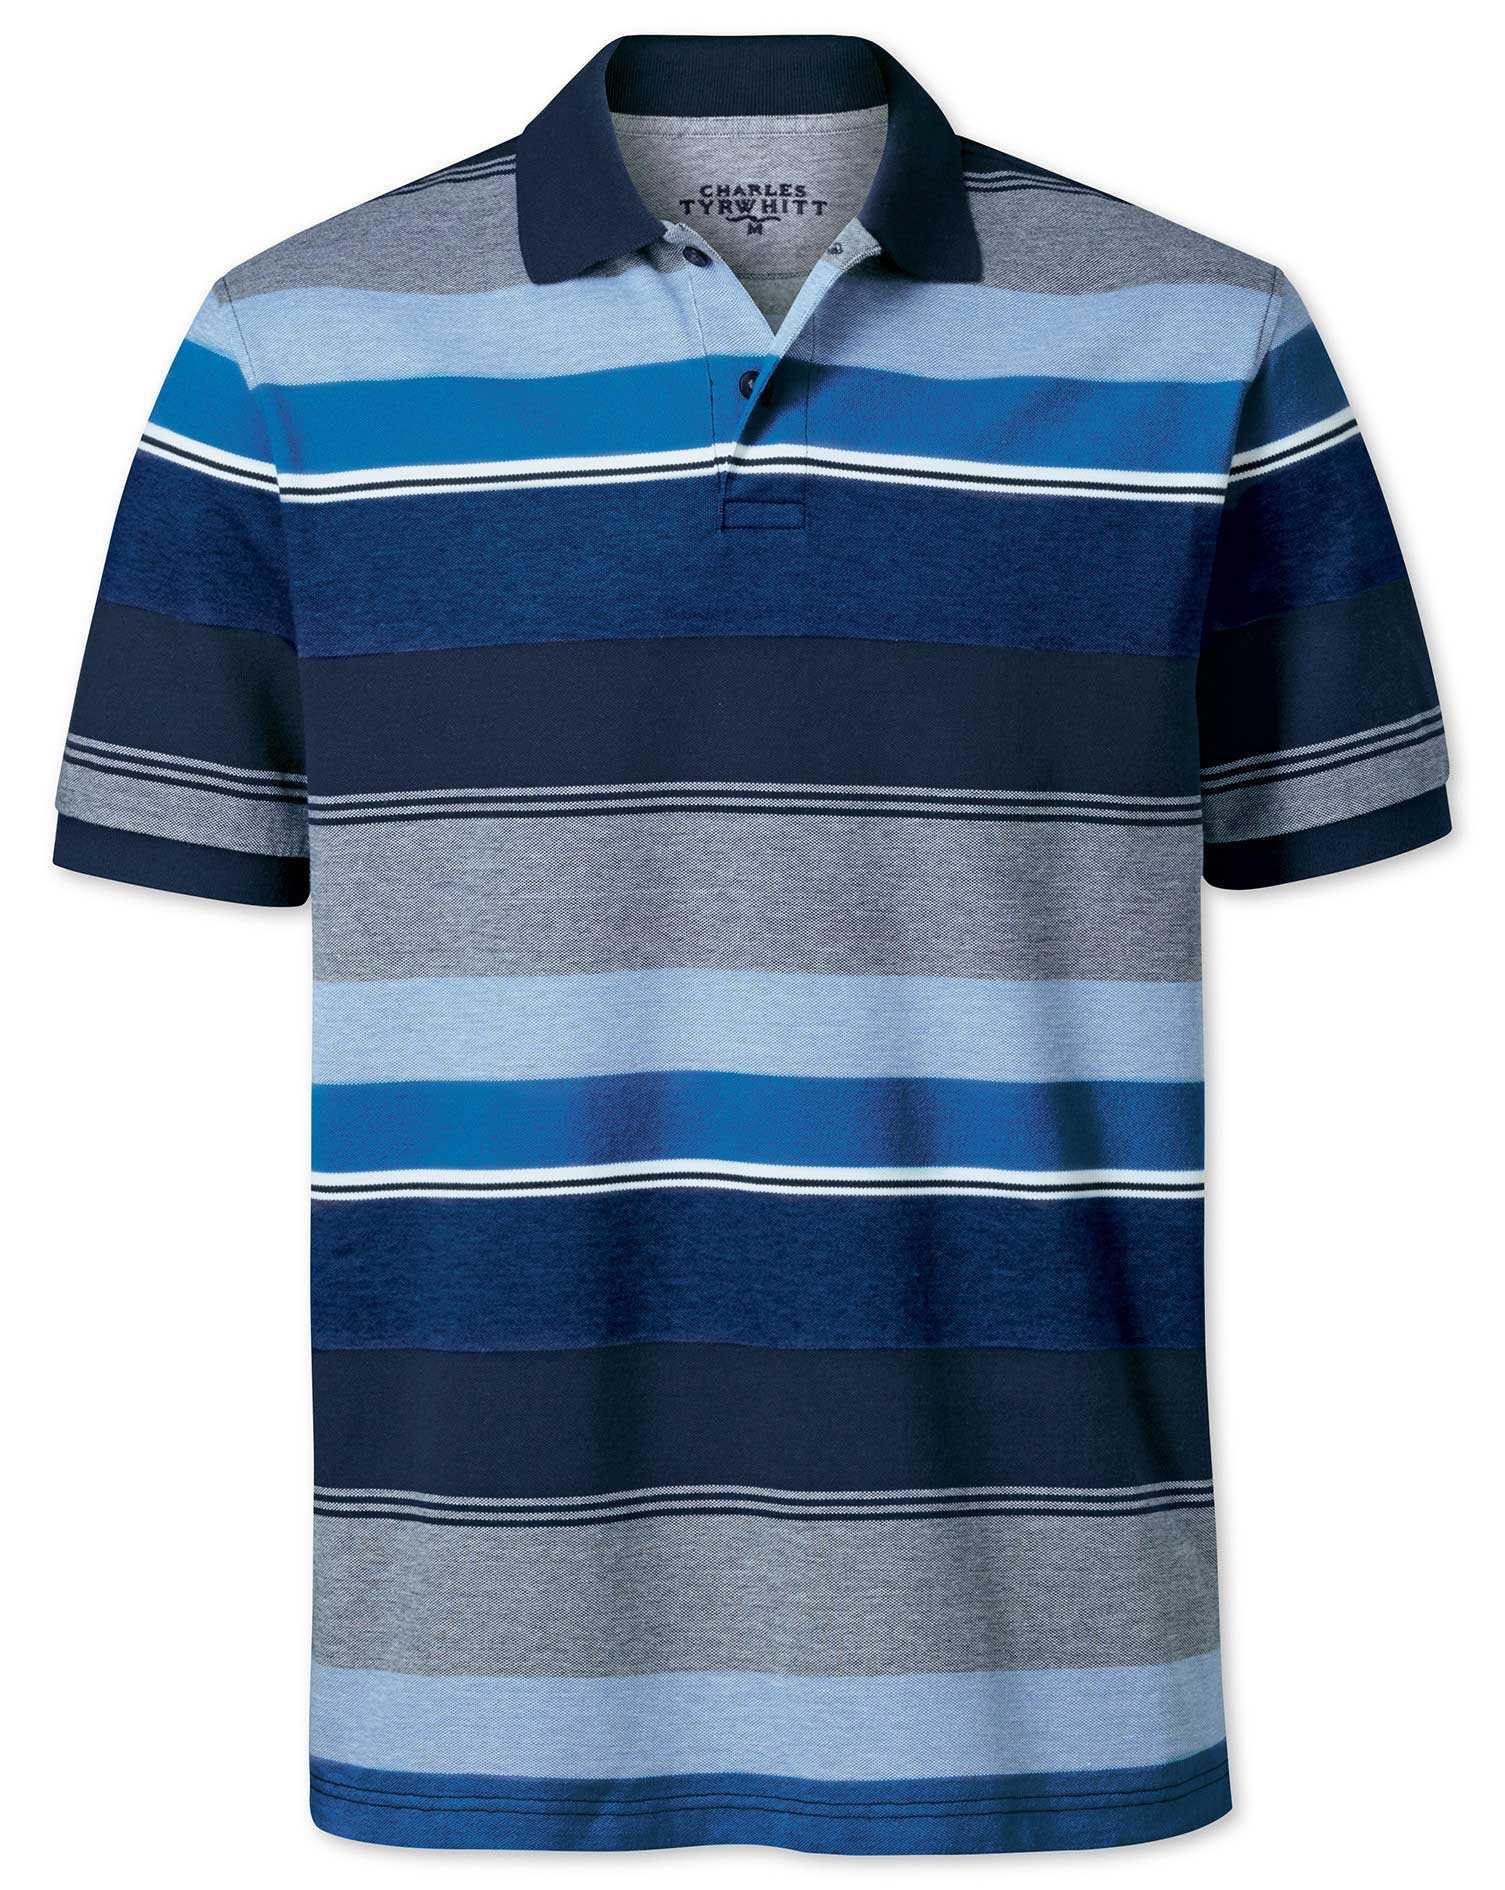 Blue Multi Stripe Oxford Pique Cotton Polo Size Medium by Charles Tyrwhitt